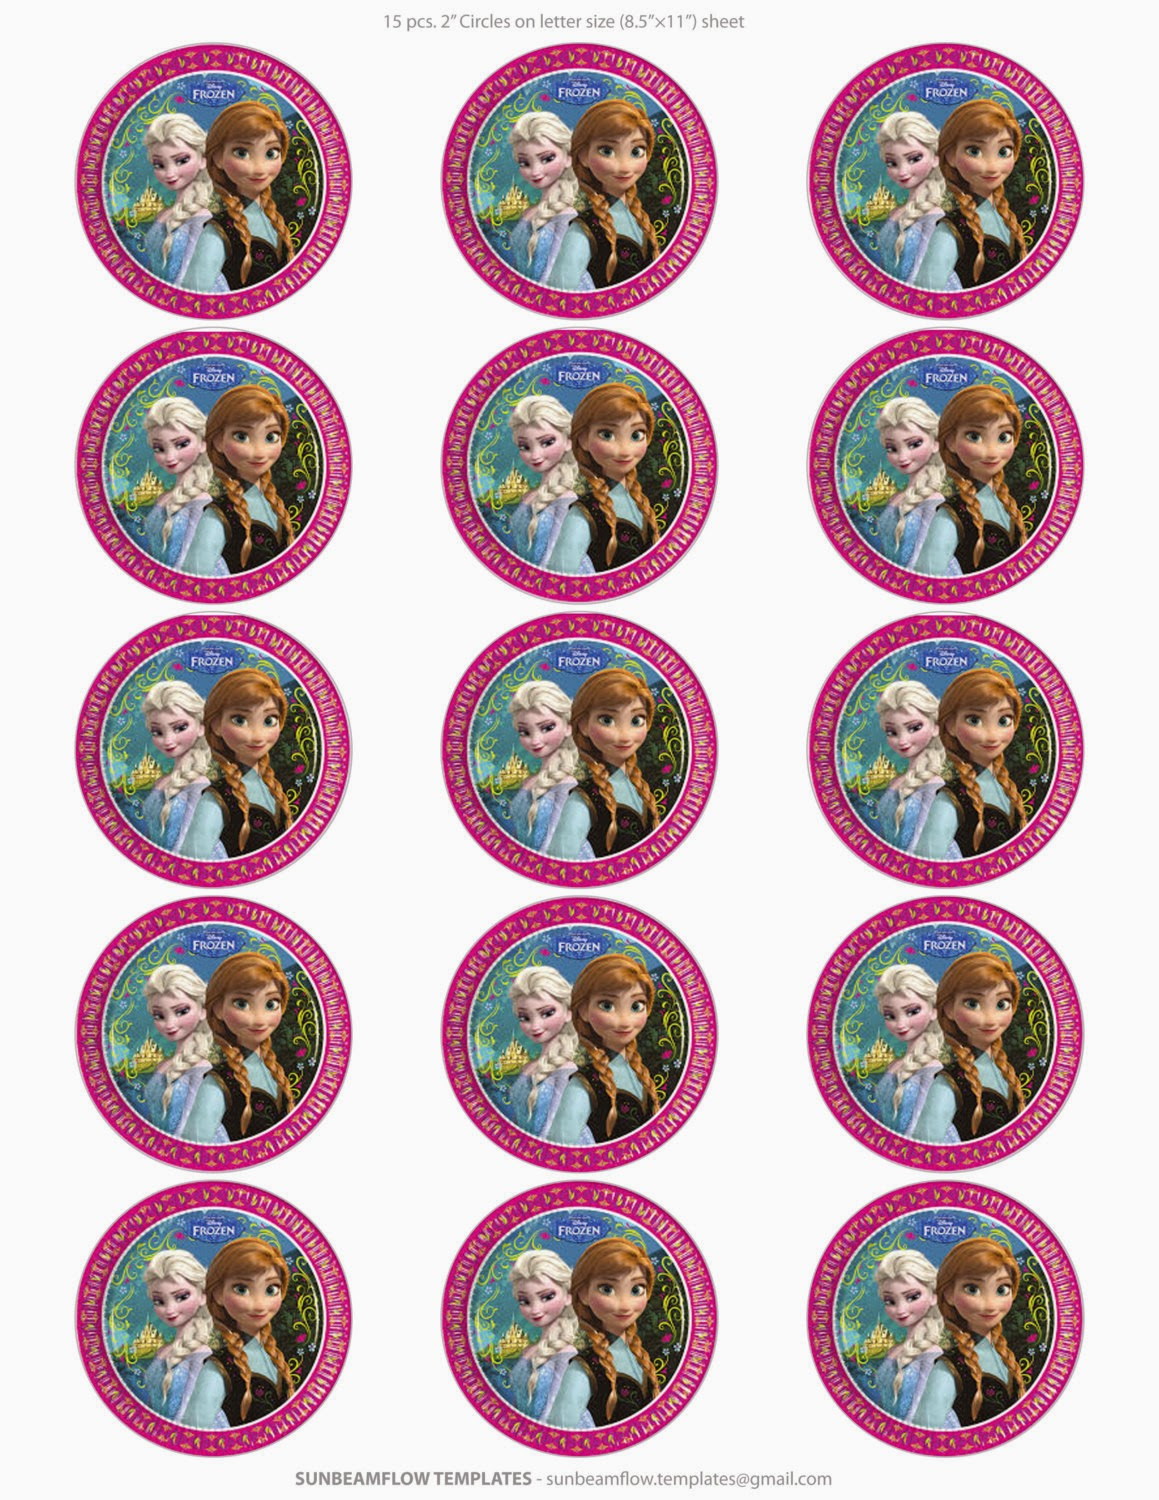 Frozen: Free Printable Toppers. - Oh My Fiesta! in english